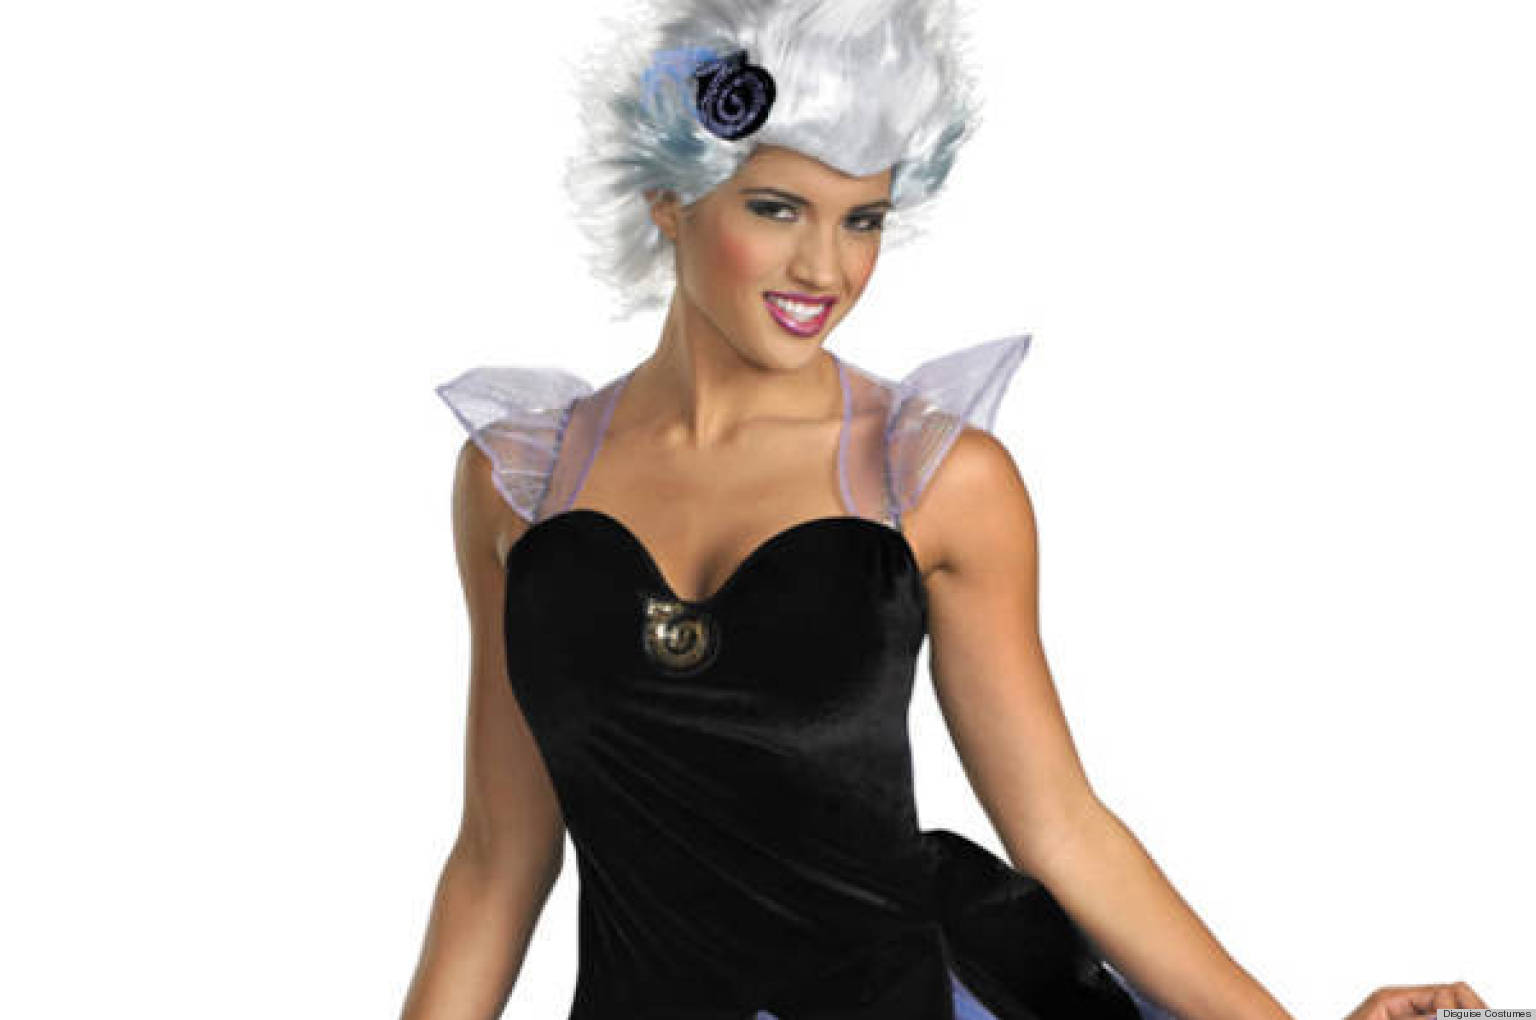 sassy ursula' halloween costume sparks controversy over plus sizes